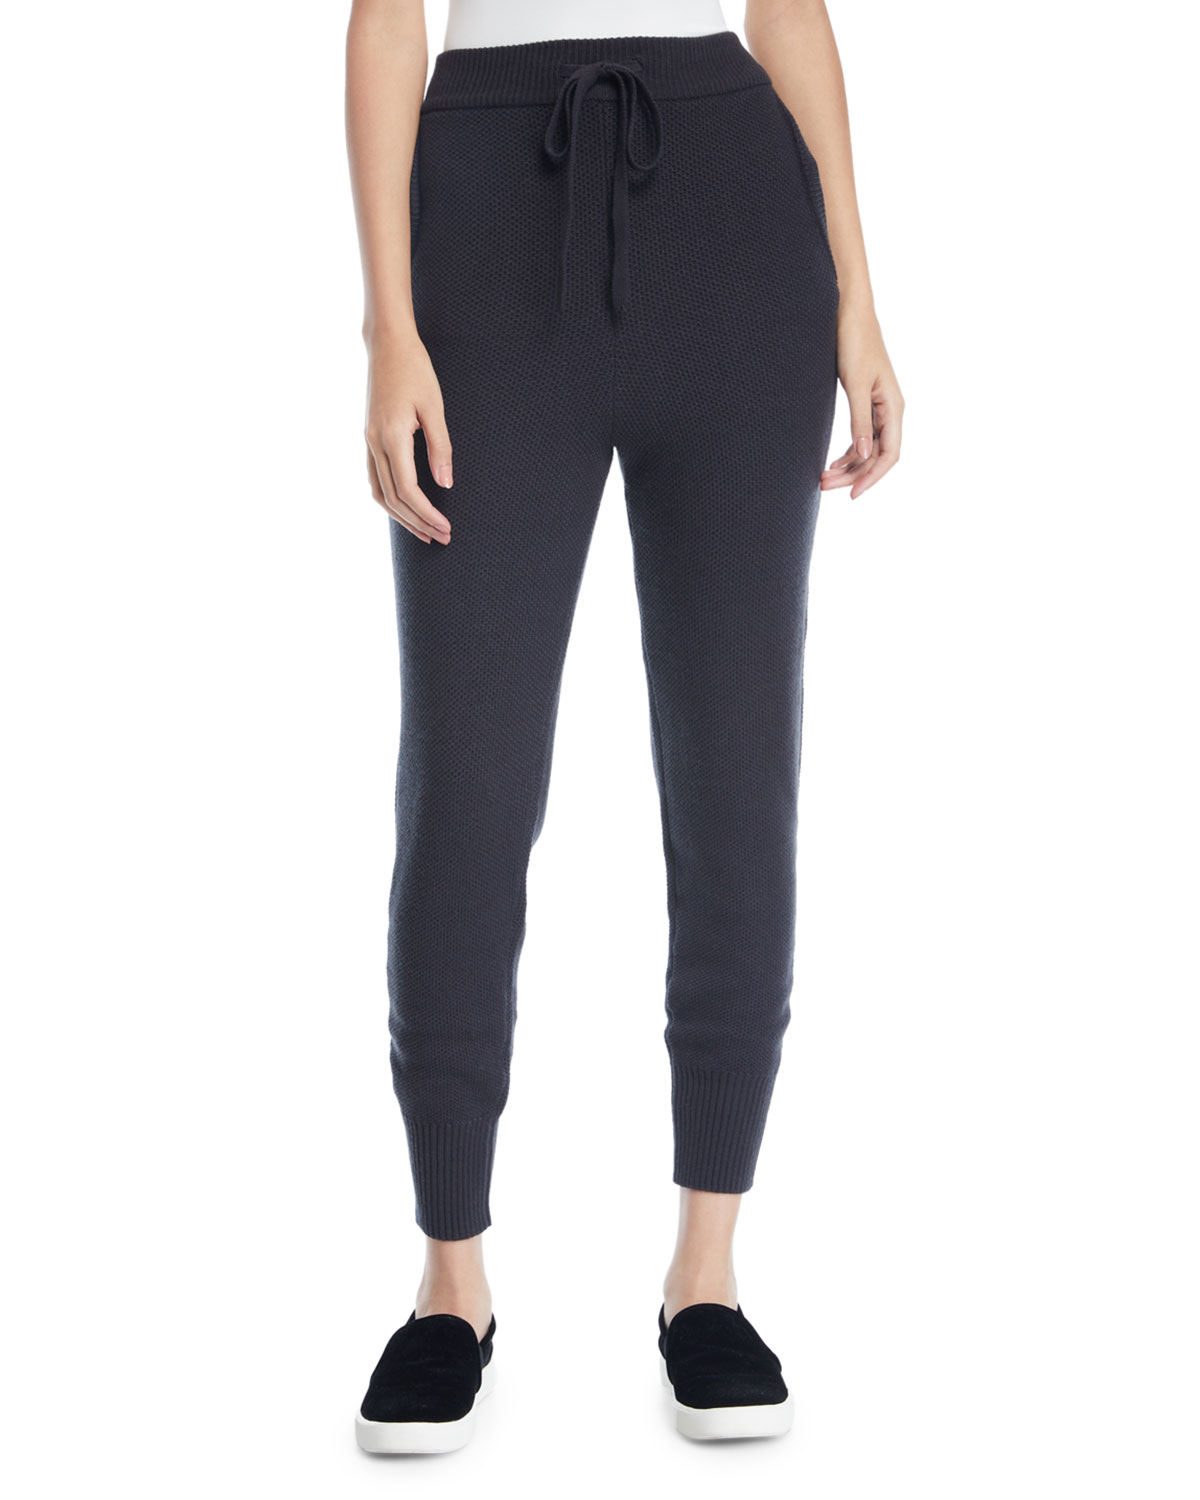 MARLED BY REUNITED Textured Stitch Drawstring Jogger Pants in Charcoal